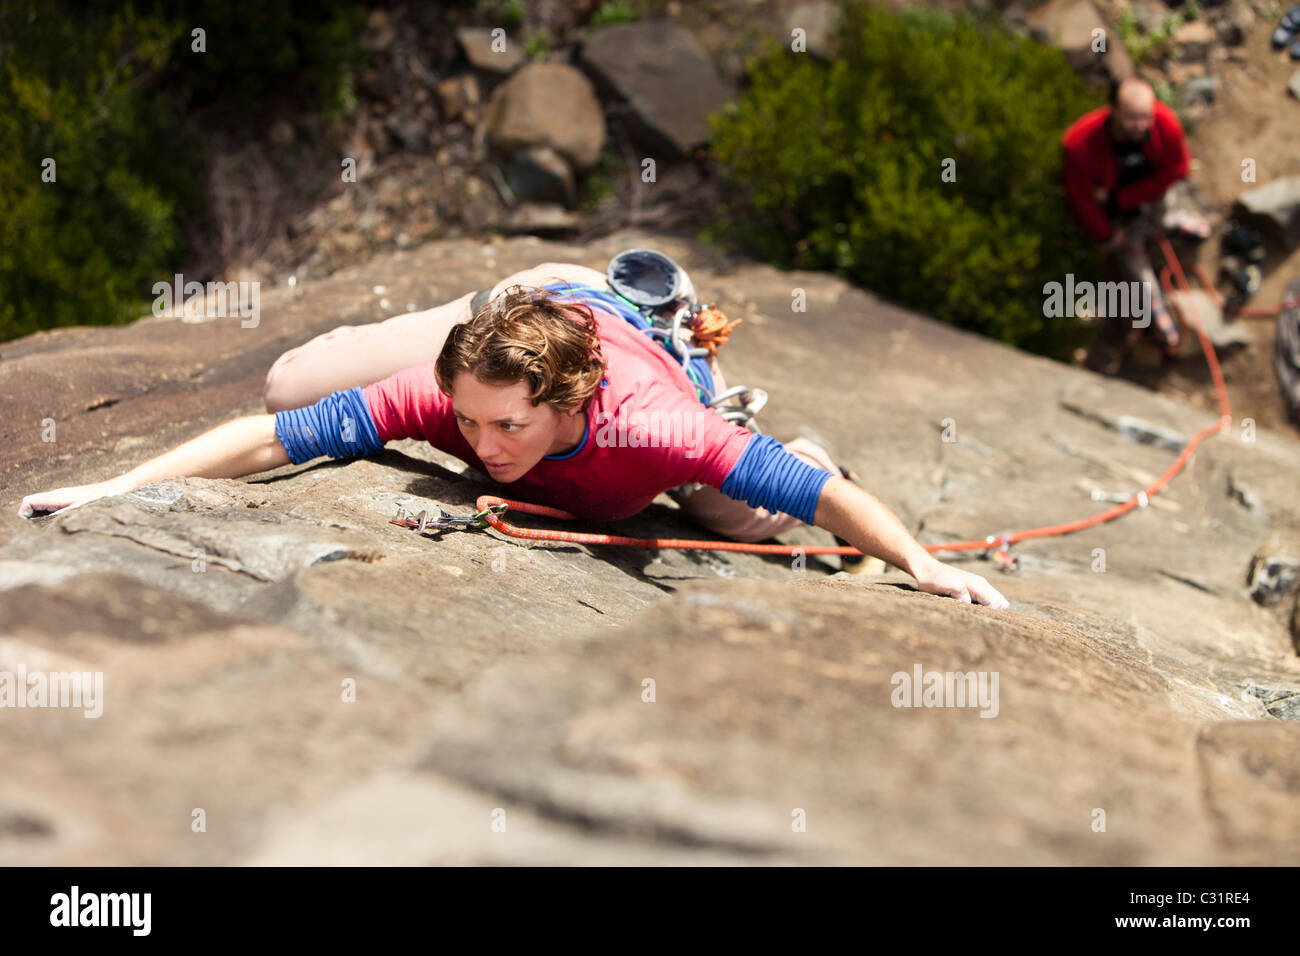 An adult female climber shows her game-face on a route in Australia. - Stock Image